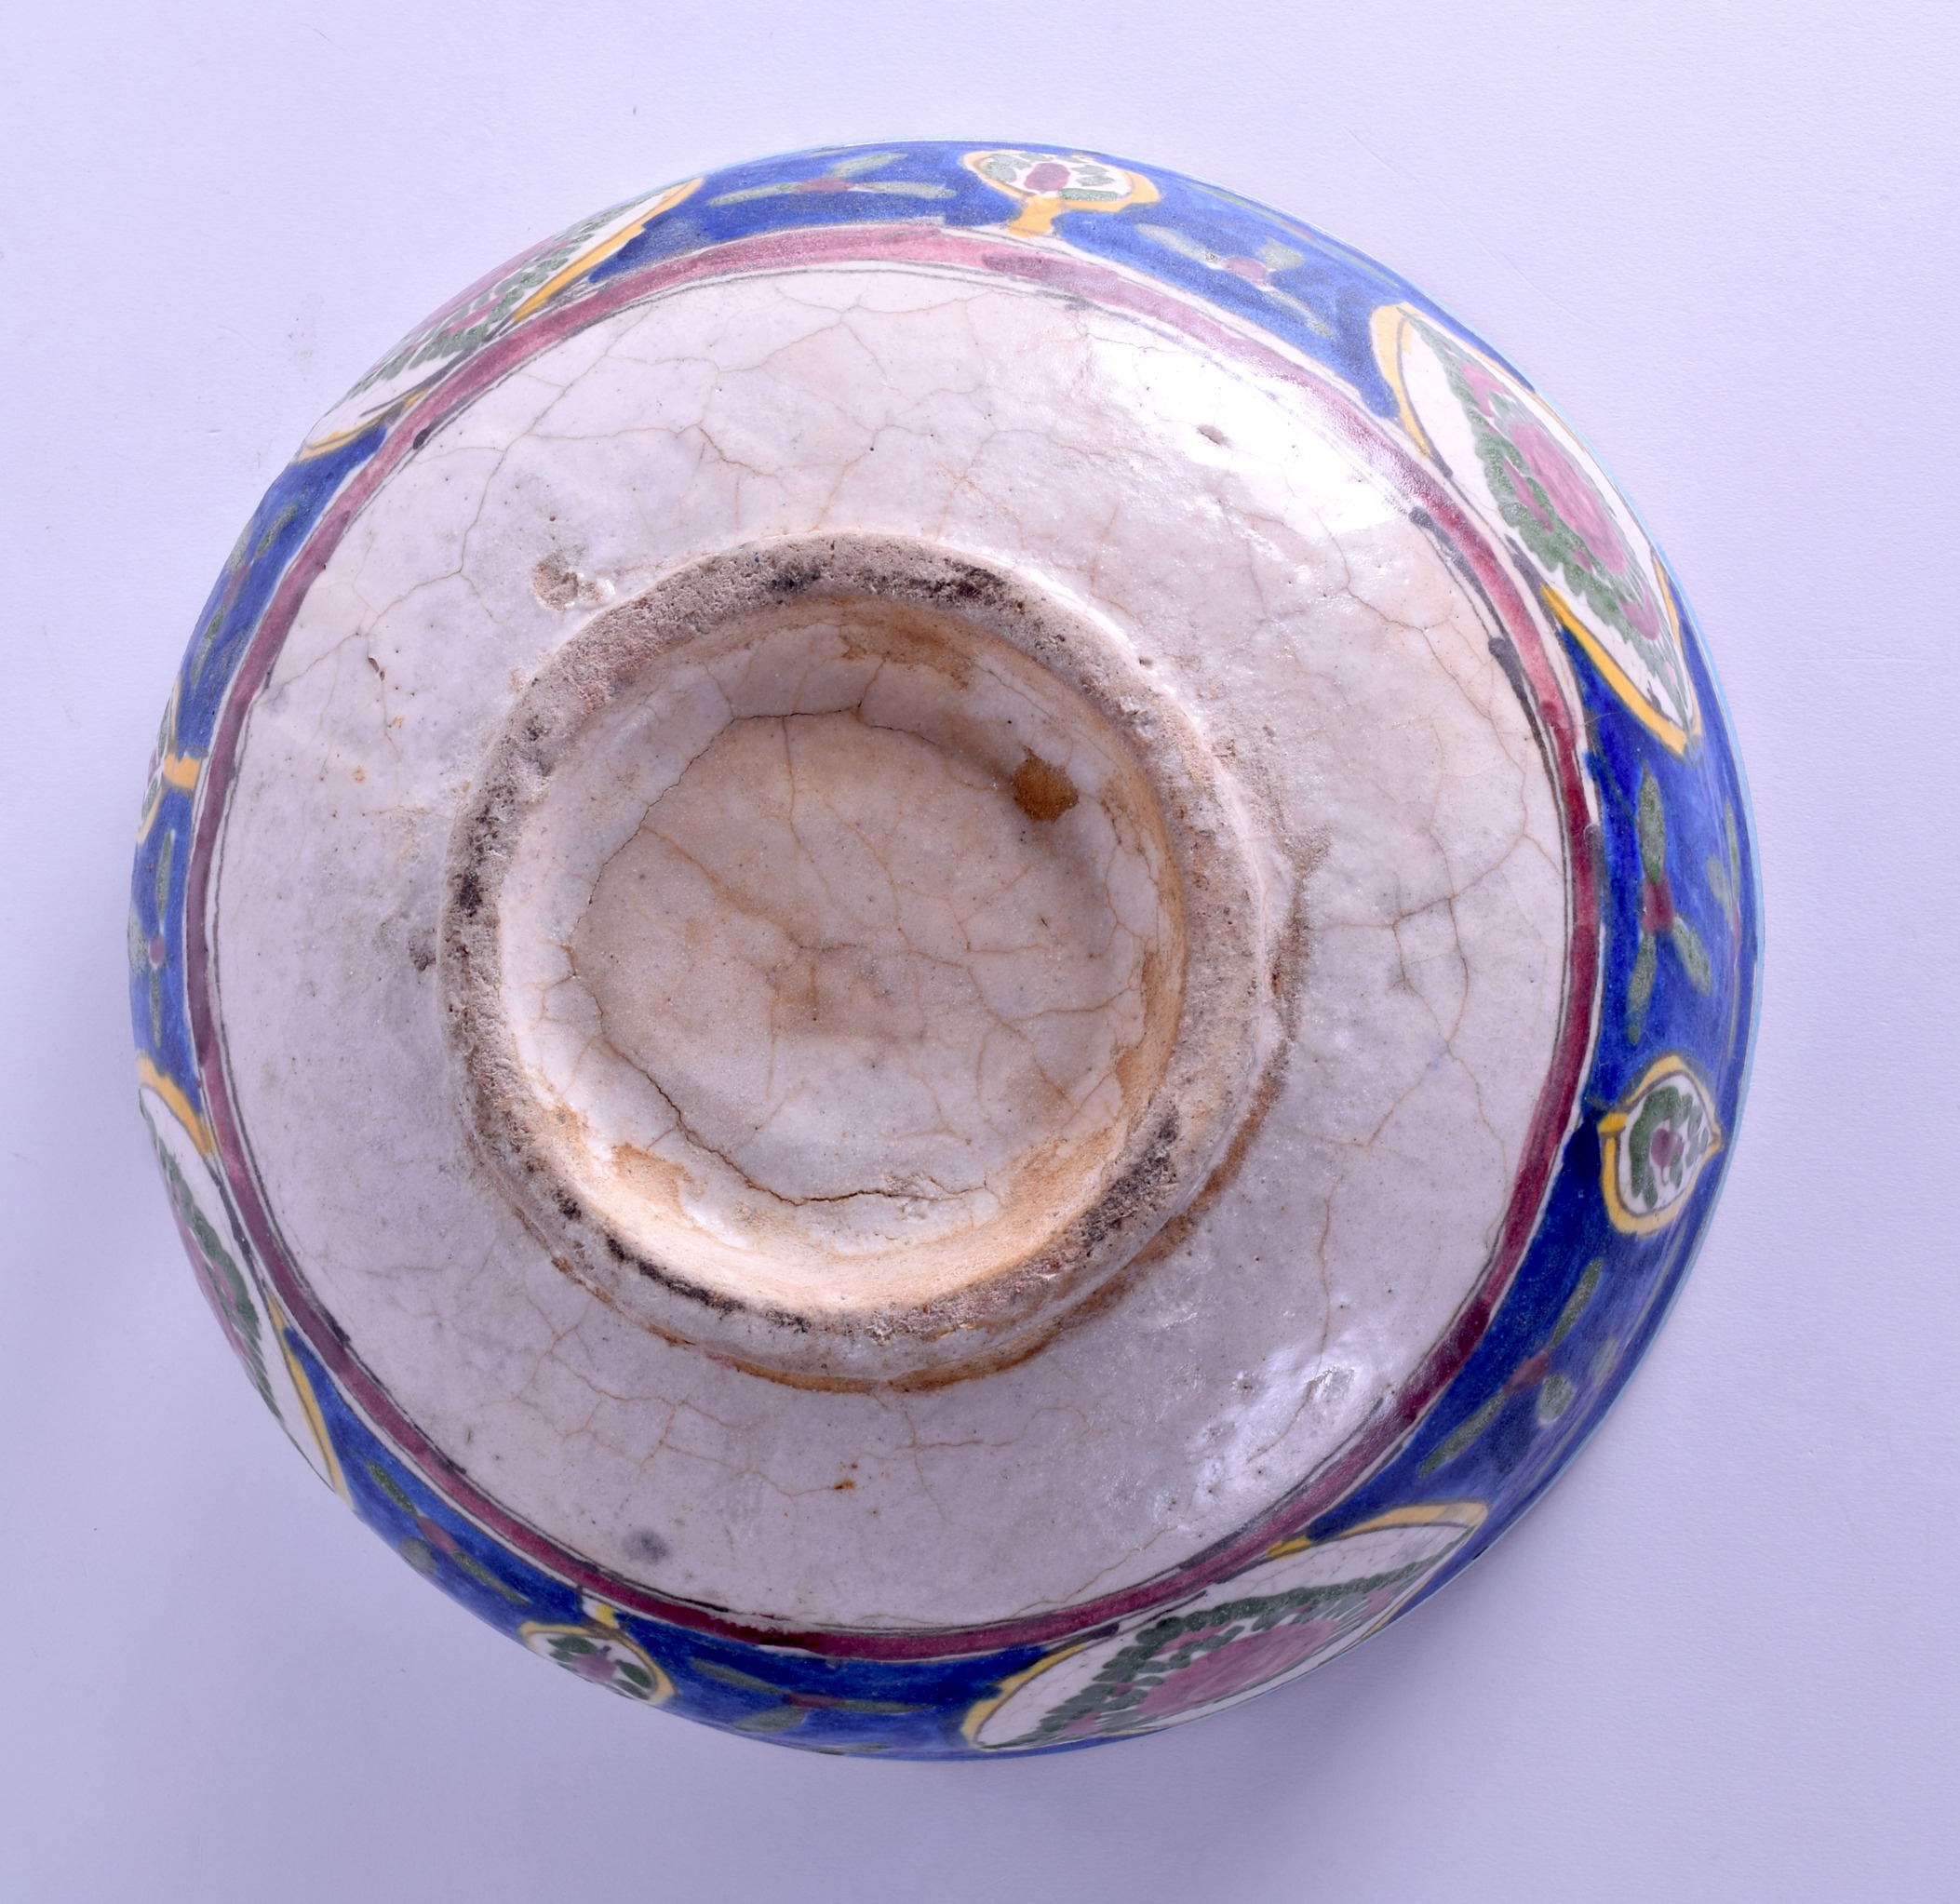 Lot 111 - A LARGE EARLY 20TH CENTURY PERSIAN POTTERY BOWL painted with fish and motifs. 31 cm diameter.